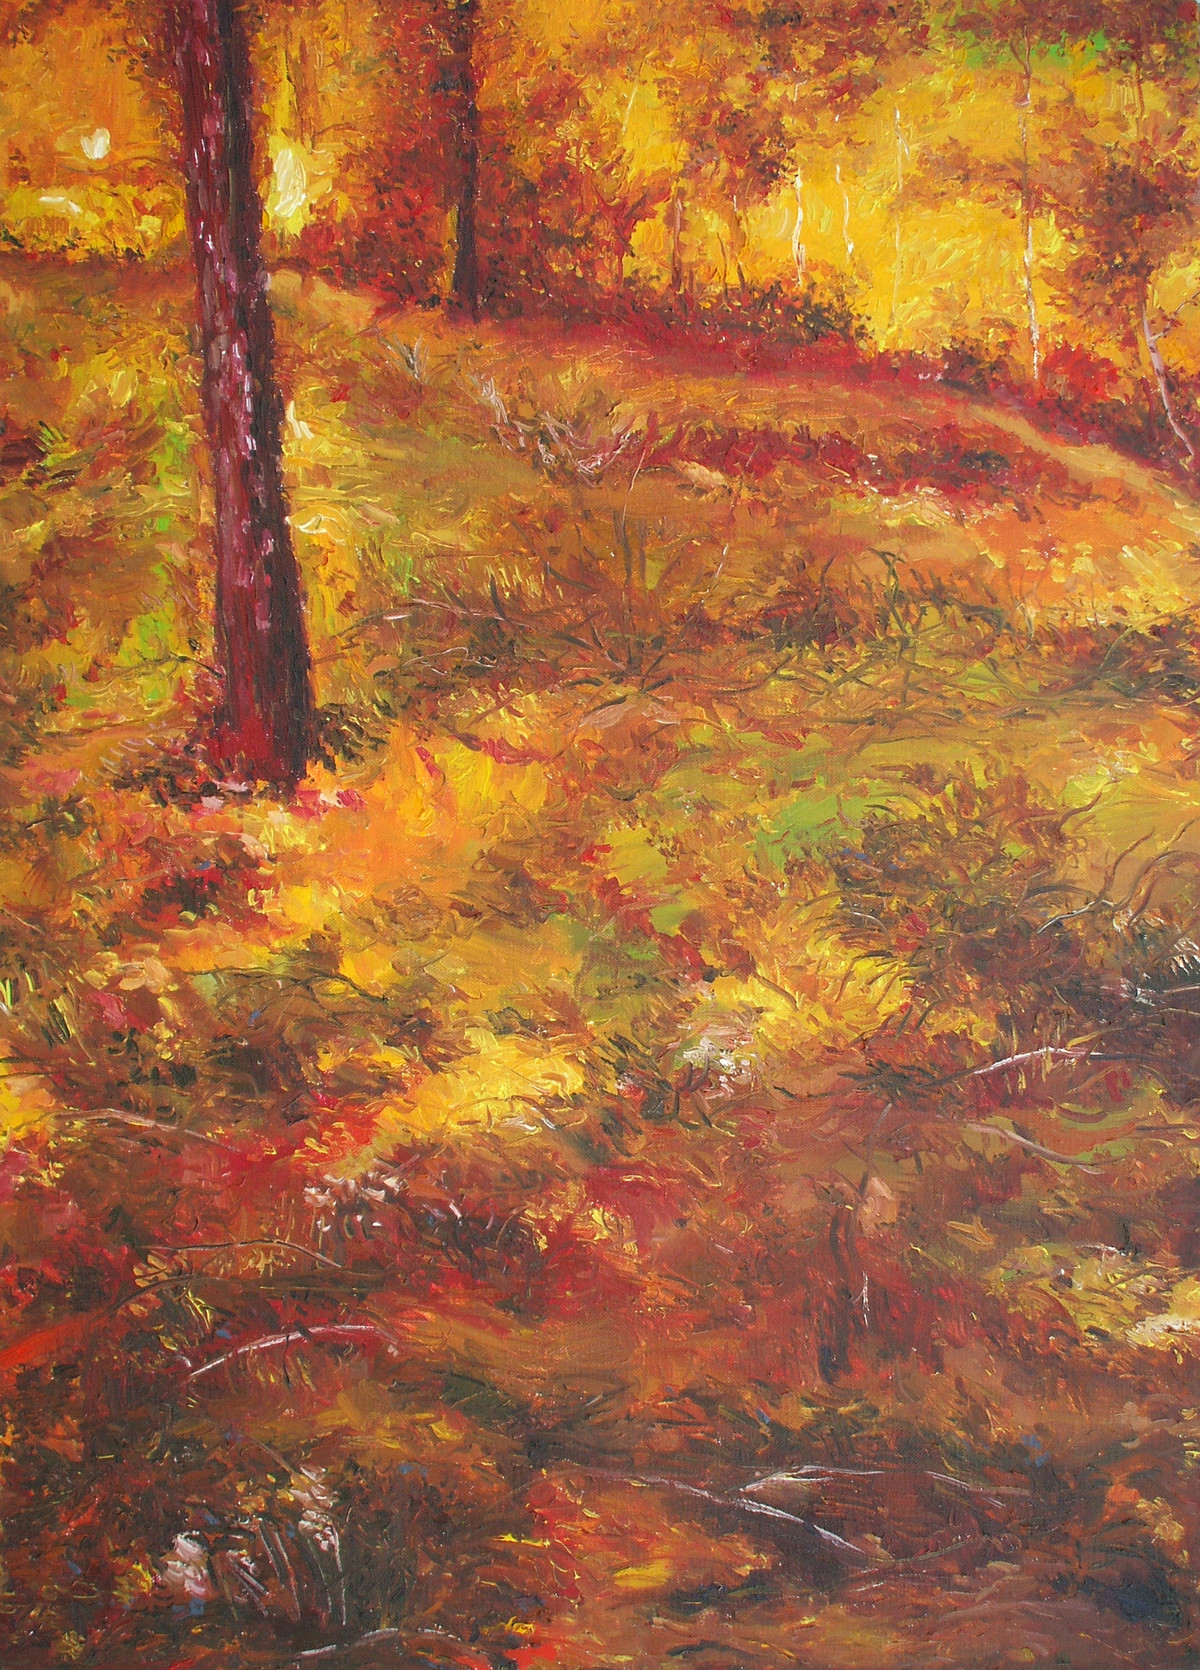 Autumn Landscape - Oil paining by Animesh Roy